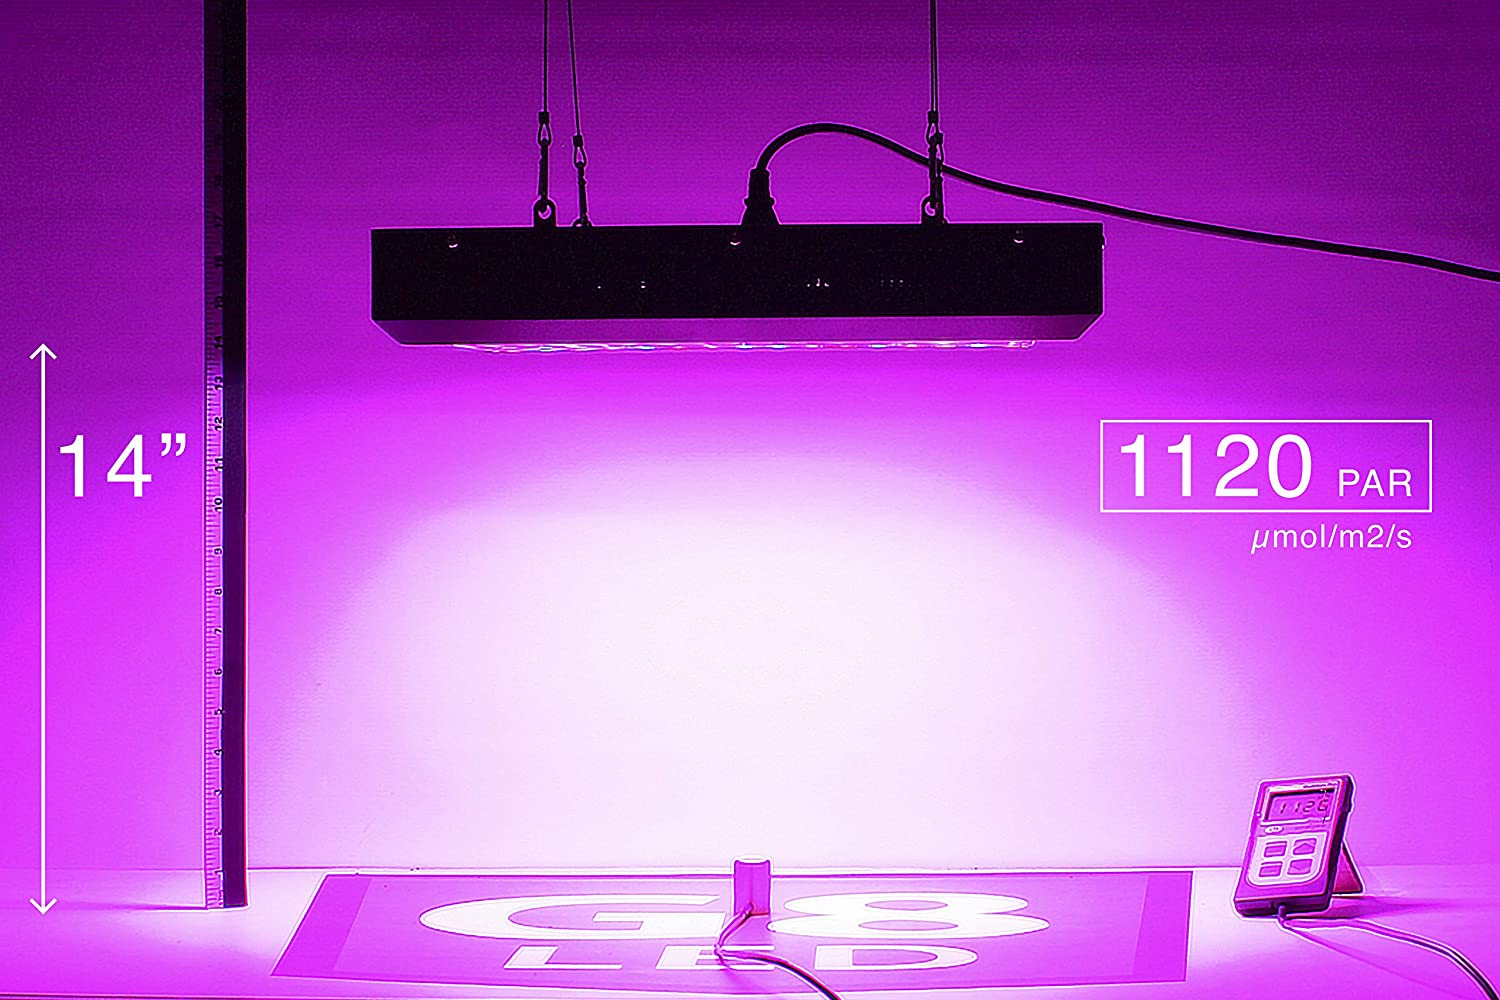 Top 15 Best LED Grow Lights Reviews in 2019 (Growing Marijuana & Weed) 9